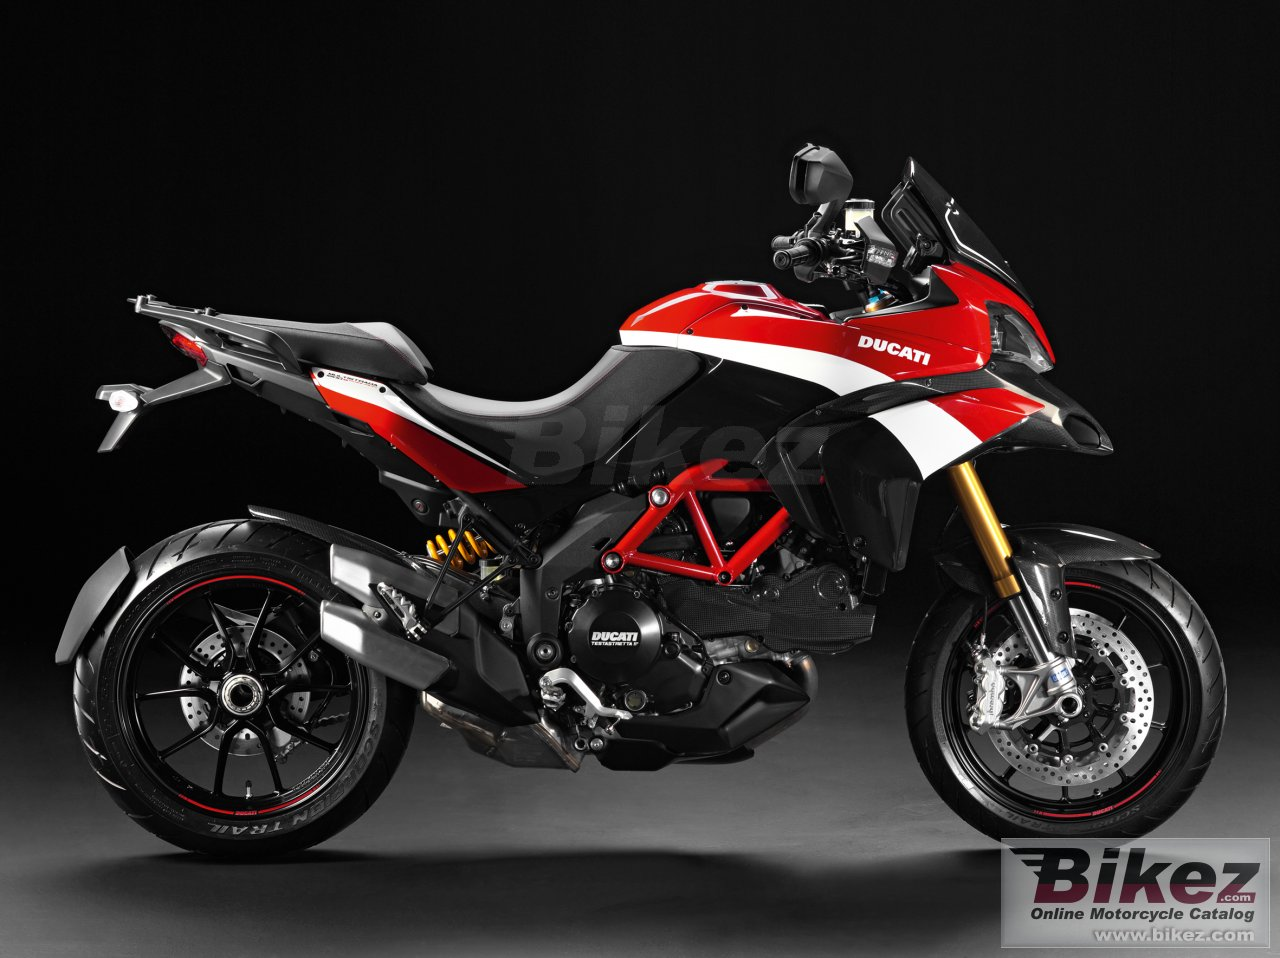 Big Ducati multistrada 1200 s pikes peak picture and wallpaper from Bikez.com